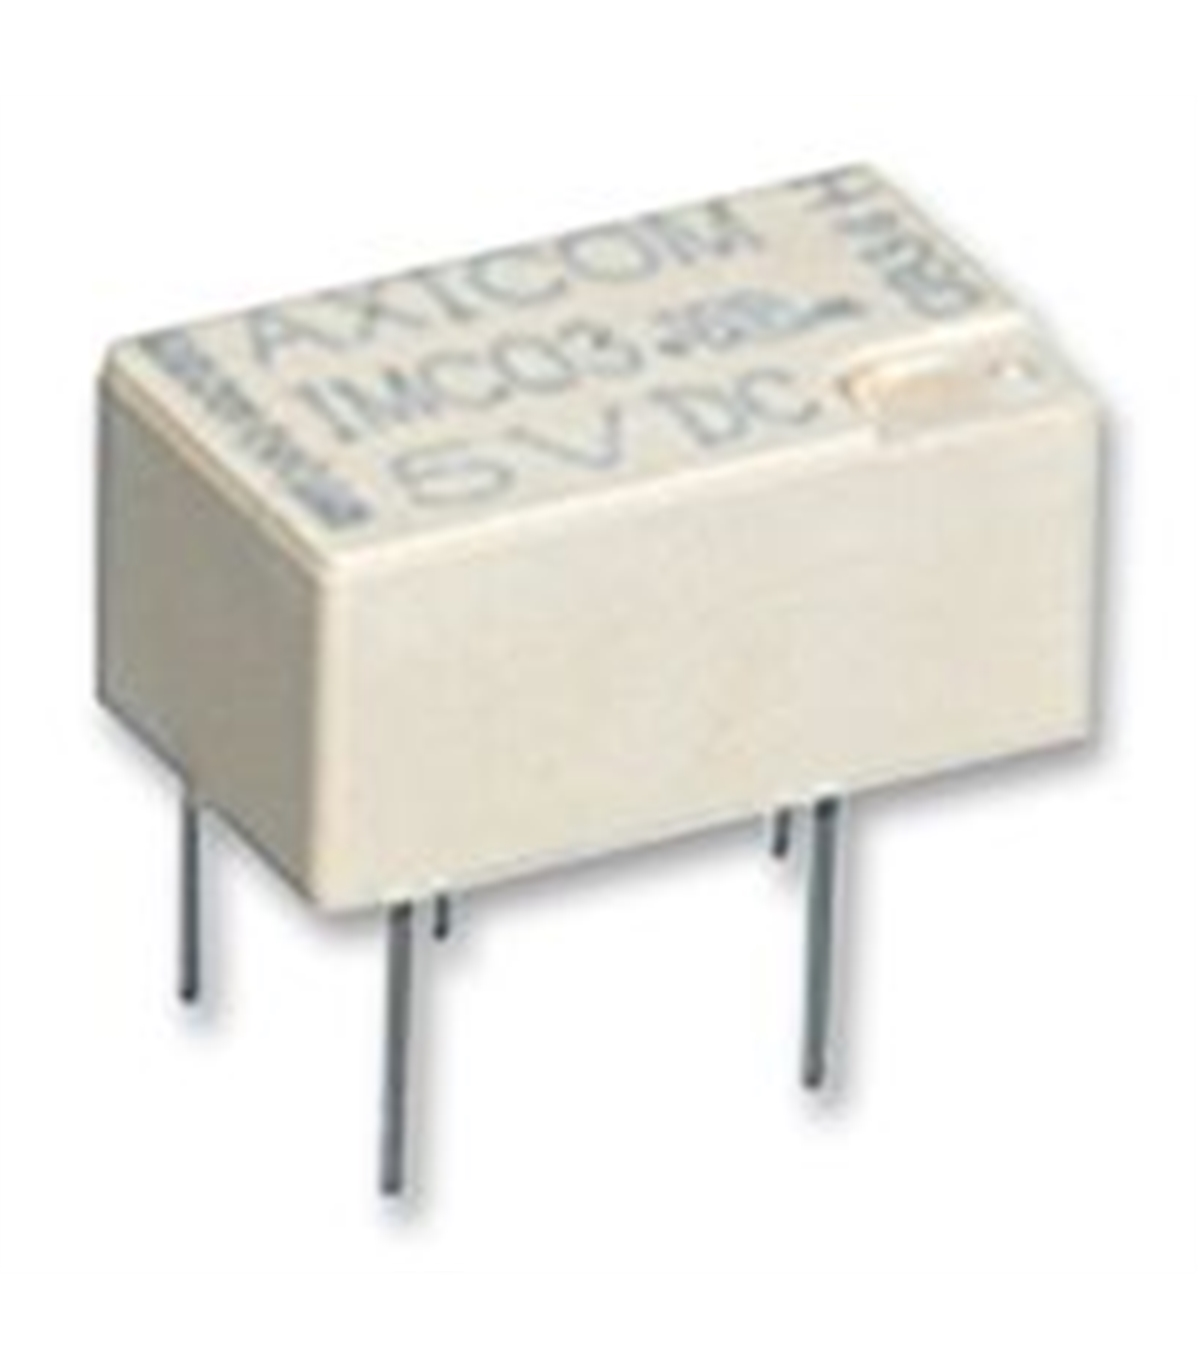 Imc03ts Signal Relay Im Series Spdt 5 Vdc 2 A Electronica Spst Reed 5vdc Coil